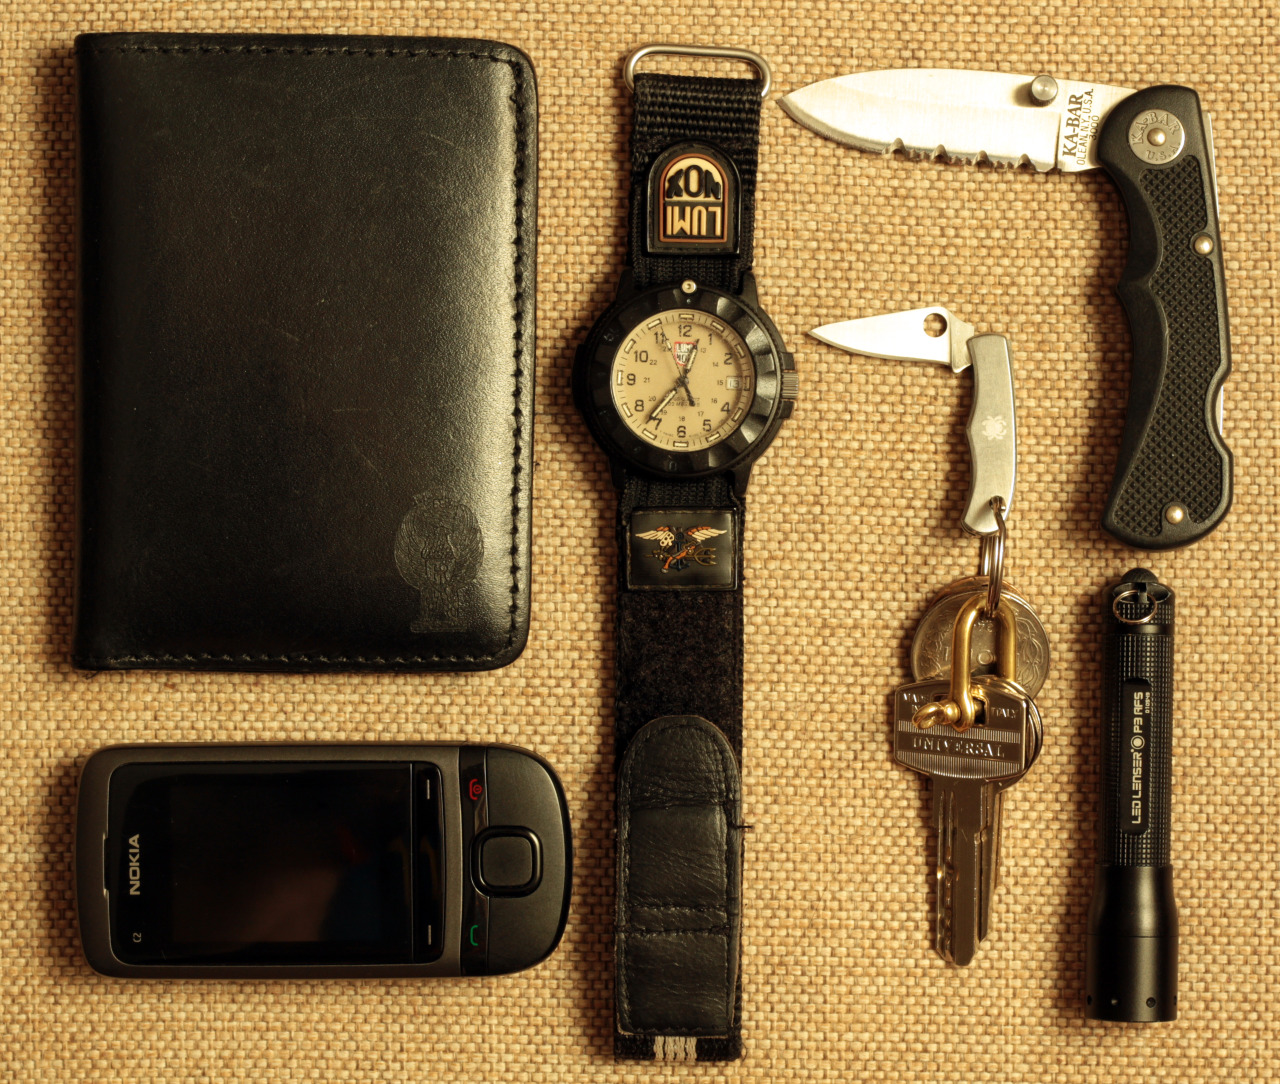 Everyday Carry Submitted By: Themistius   Very nice EDC's guys. I have seen some useful items i will add to my everyday carry as soon as possible. So, let's talk about my EDC,that it's rather simple and not that expensive but it served me well for some time now,and i am satisfied with it:   Polizia di Stato wallet made by RADAR Luminox Navy Seals First Edition - Purchase on Amazon KA-BAR 3000 Led Lenser P3 AFS - Purchase on Amazon Spyderco Bug and keys - Purchase on Amazon Nokia C2 - Purchase on Amazon   That's it!